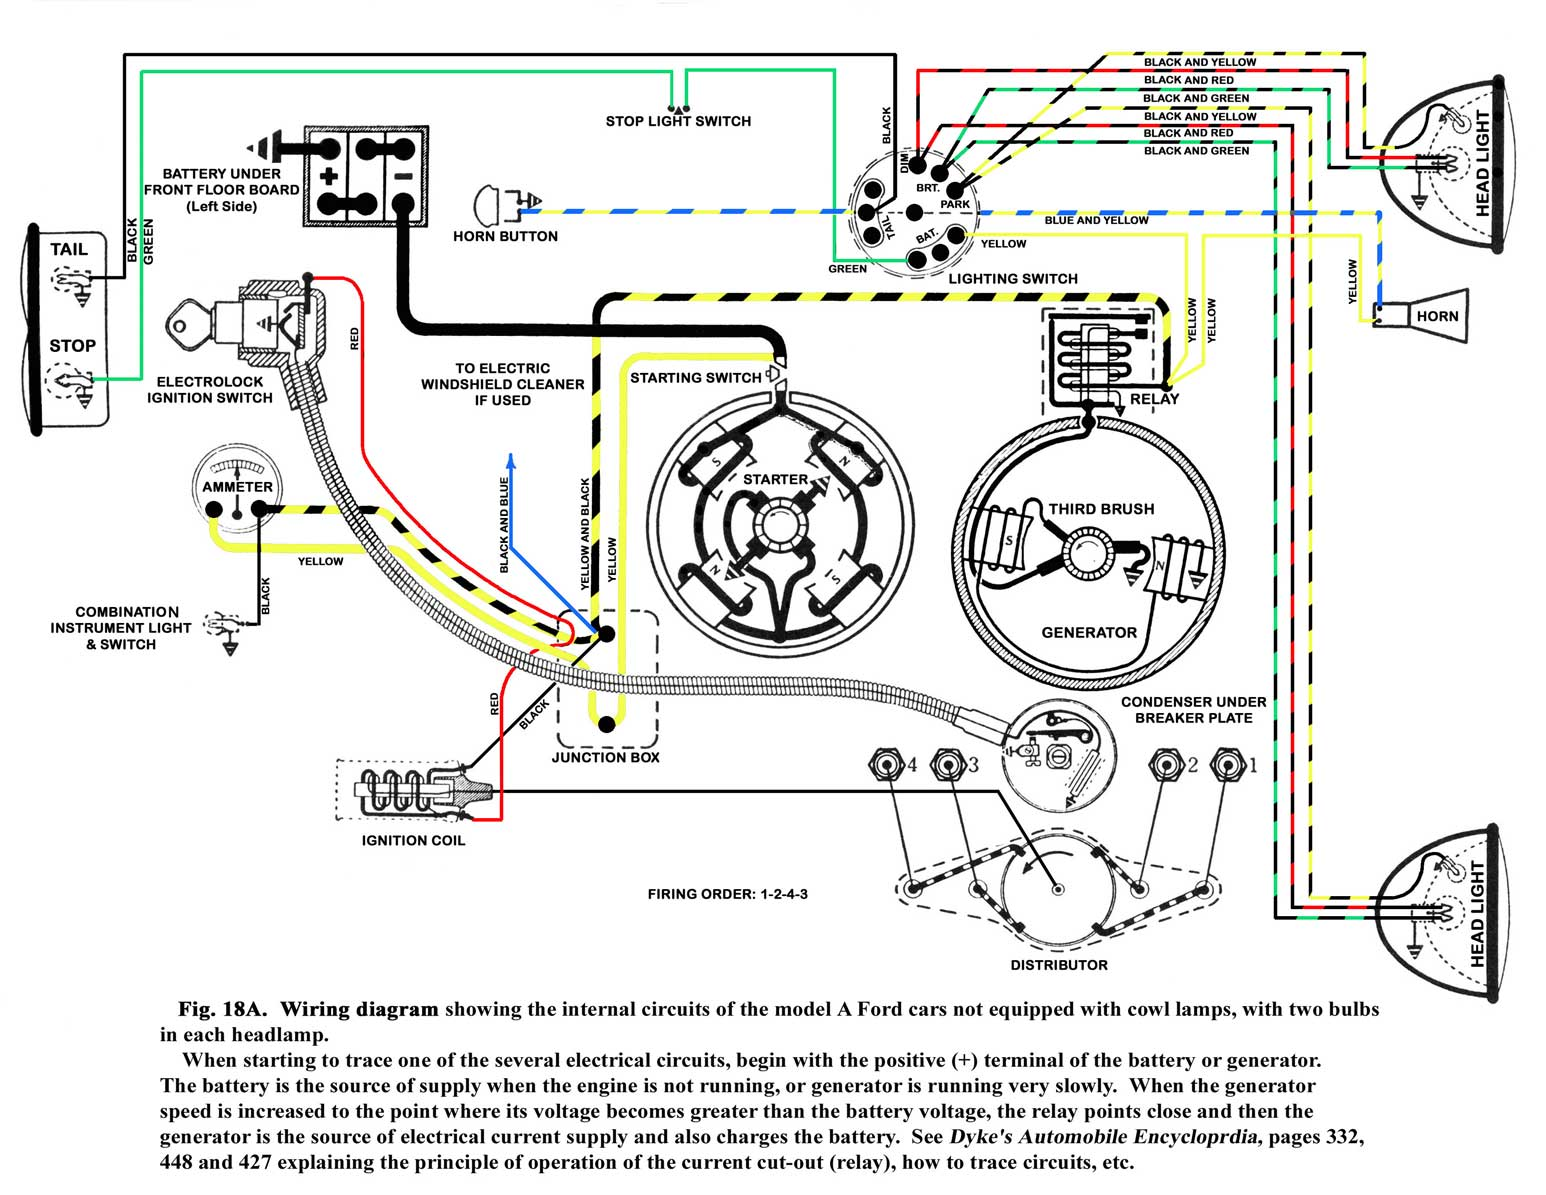 medium resolution of ford model a wiring diagram 6v wiring diagram origin ford tractor ignition switch wiring diagram ford